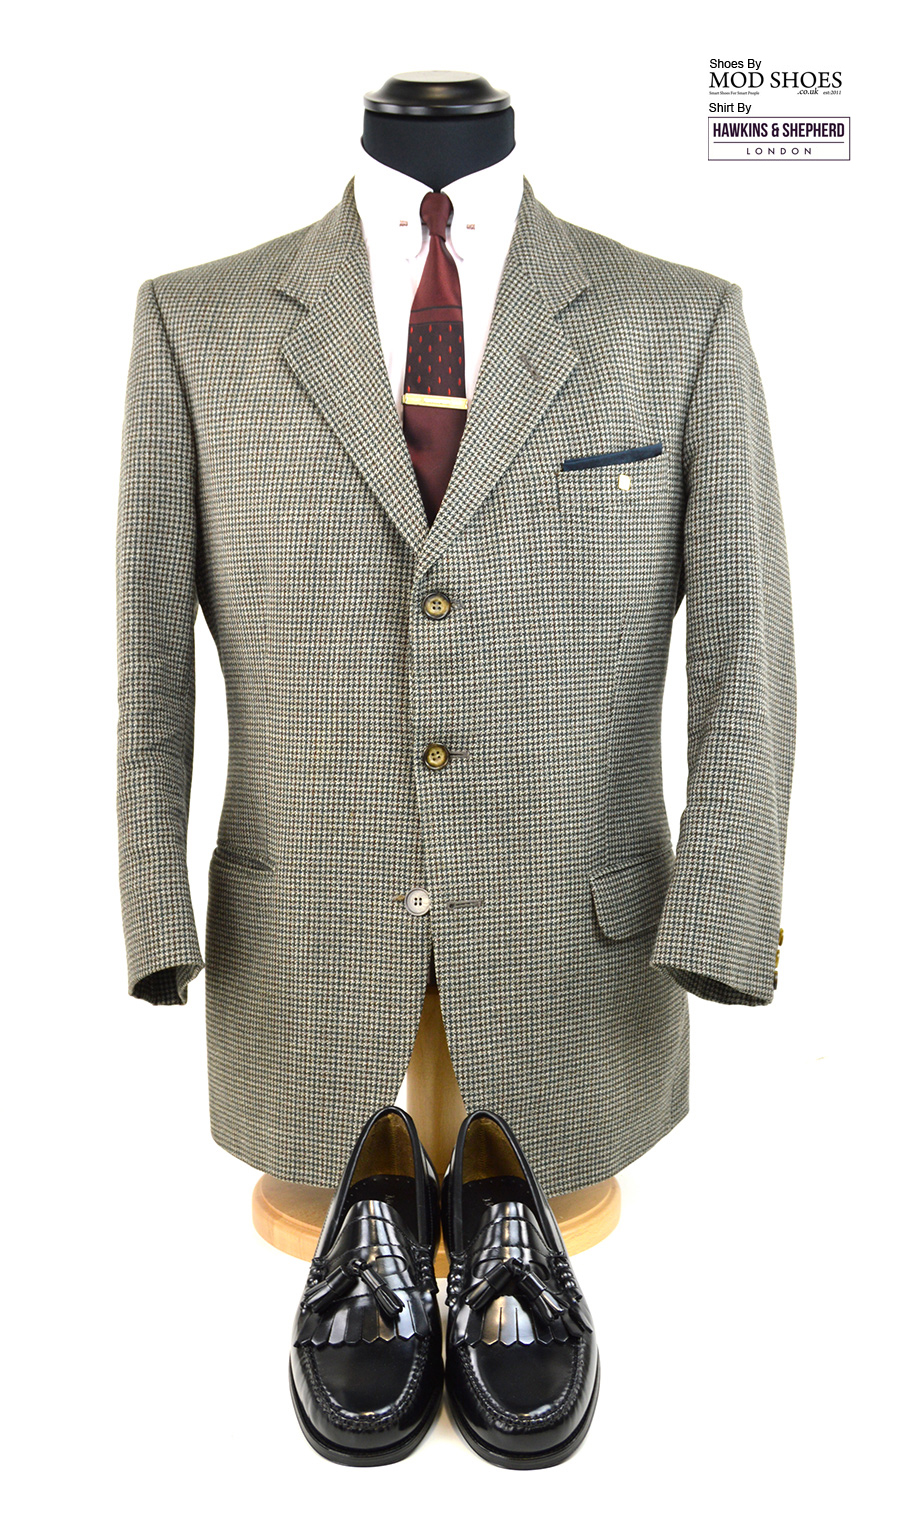 modshoes-penny-loafers-and-mod-jacket-hawkins-and-sherperds-shirt